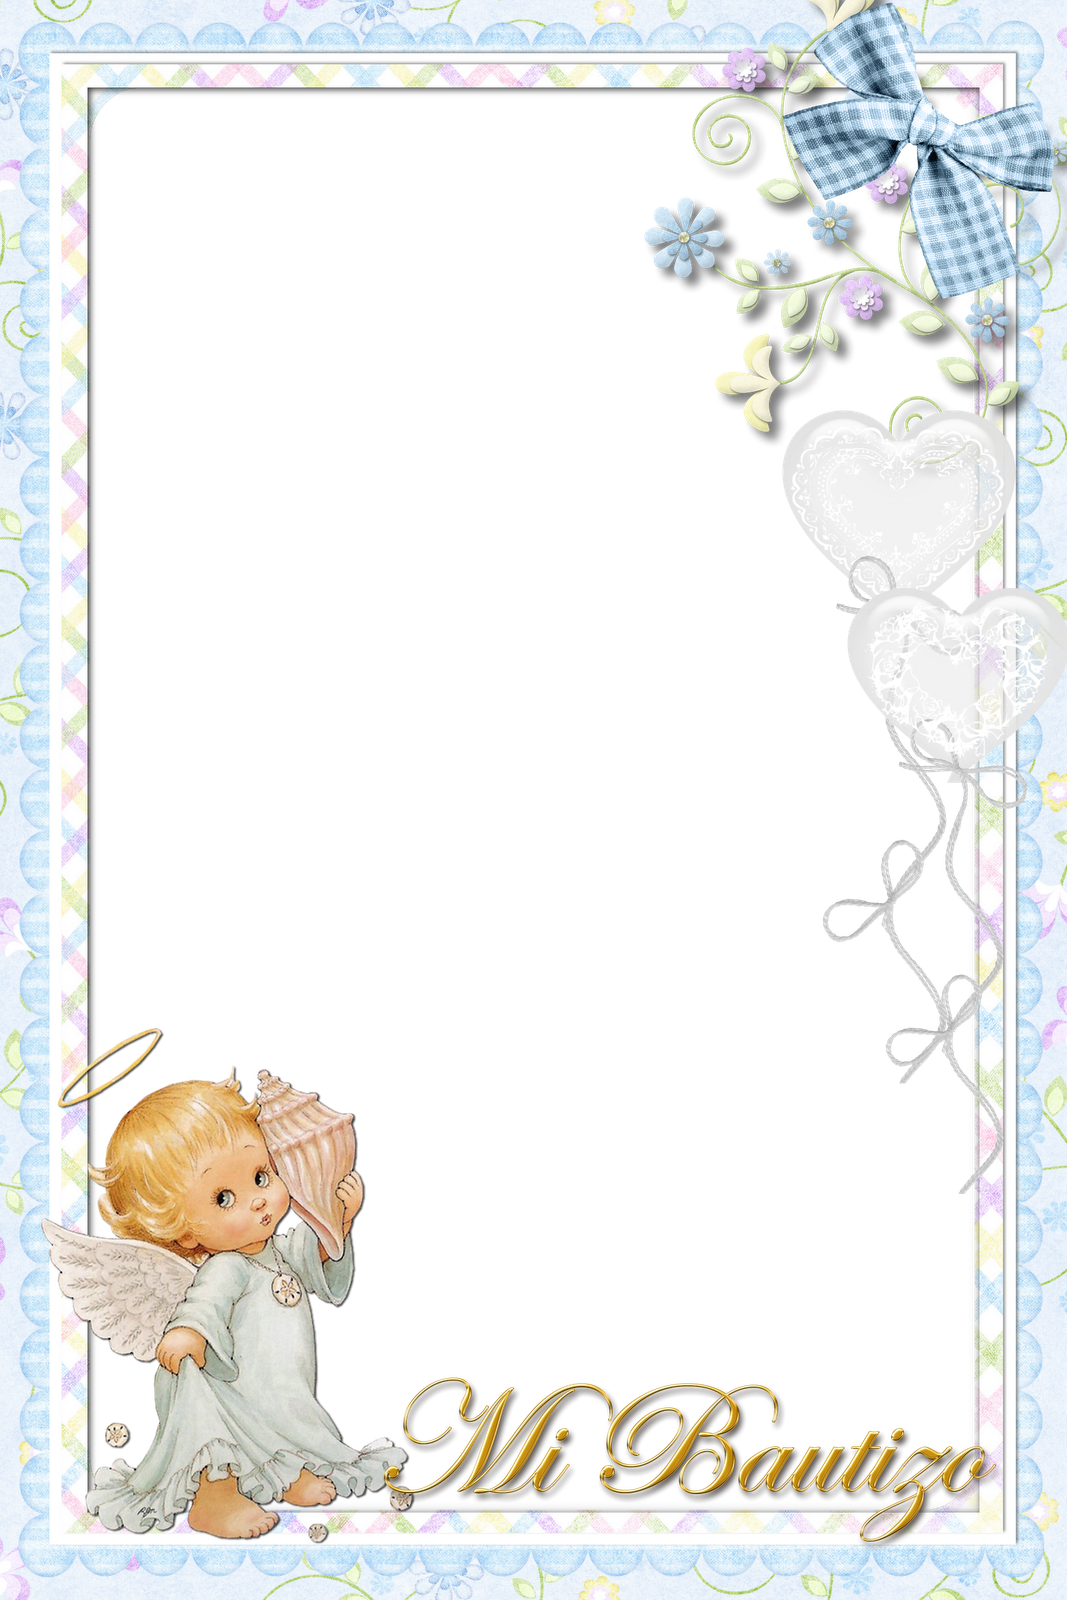 Baby Shower Invitations Target is perfect invitation layout